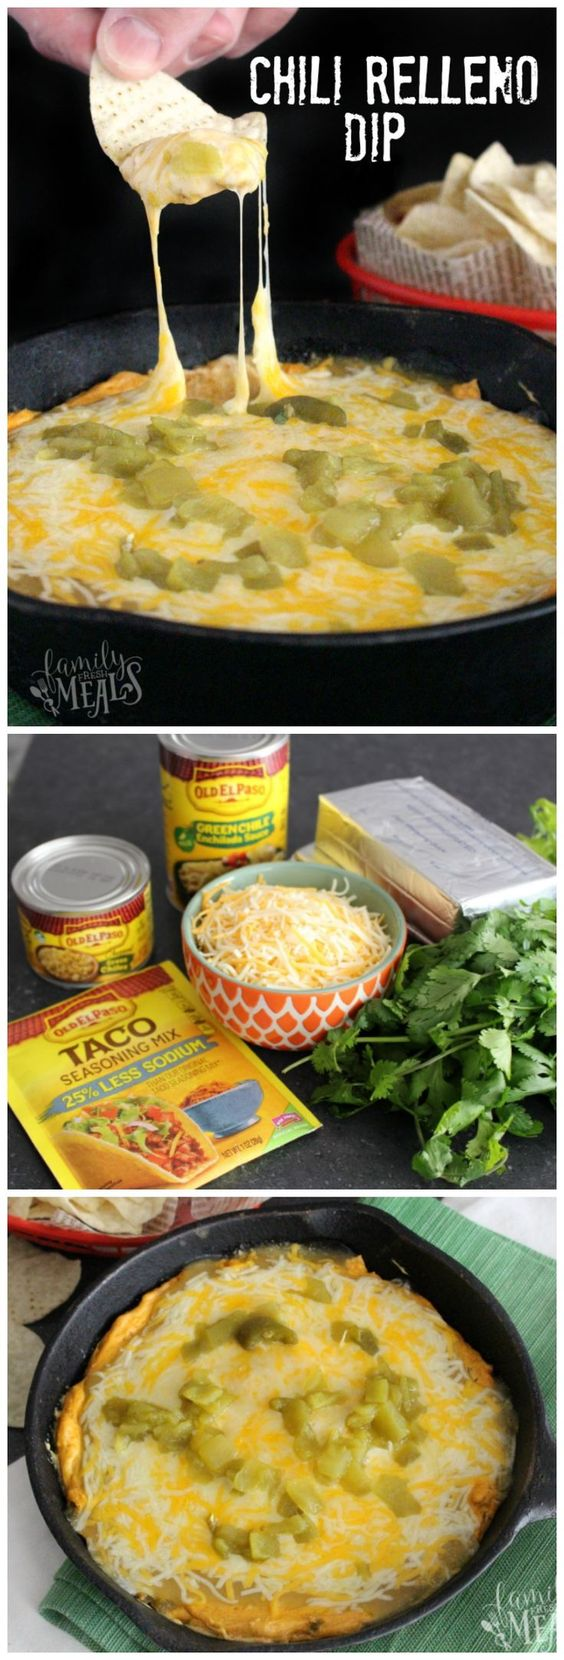 Chili Relleno Dip Recipe - Easy dip recipe to please a crowd! Love this one for Cinco de Mayo!